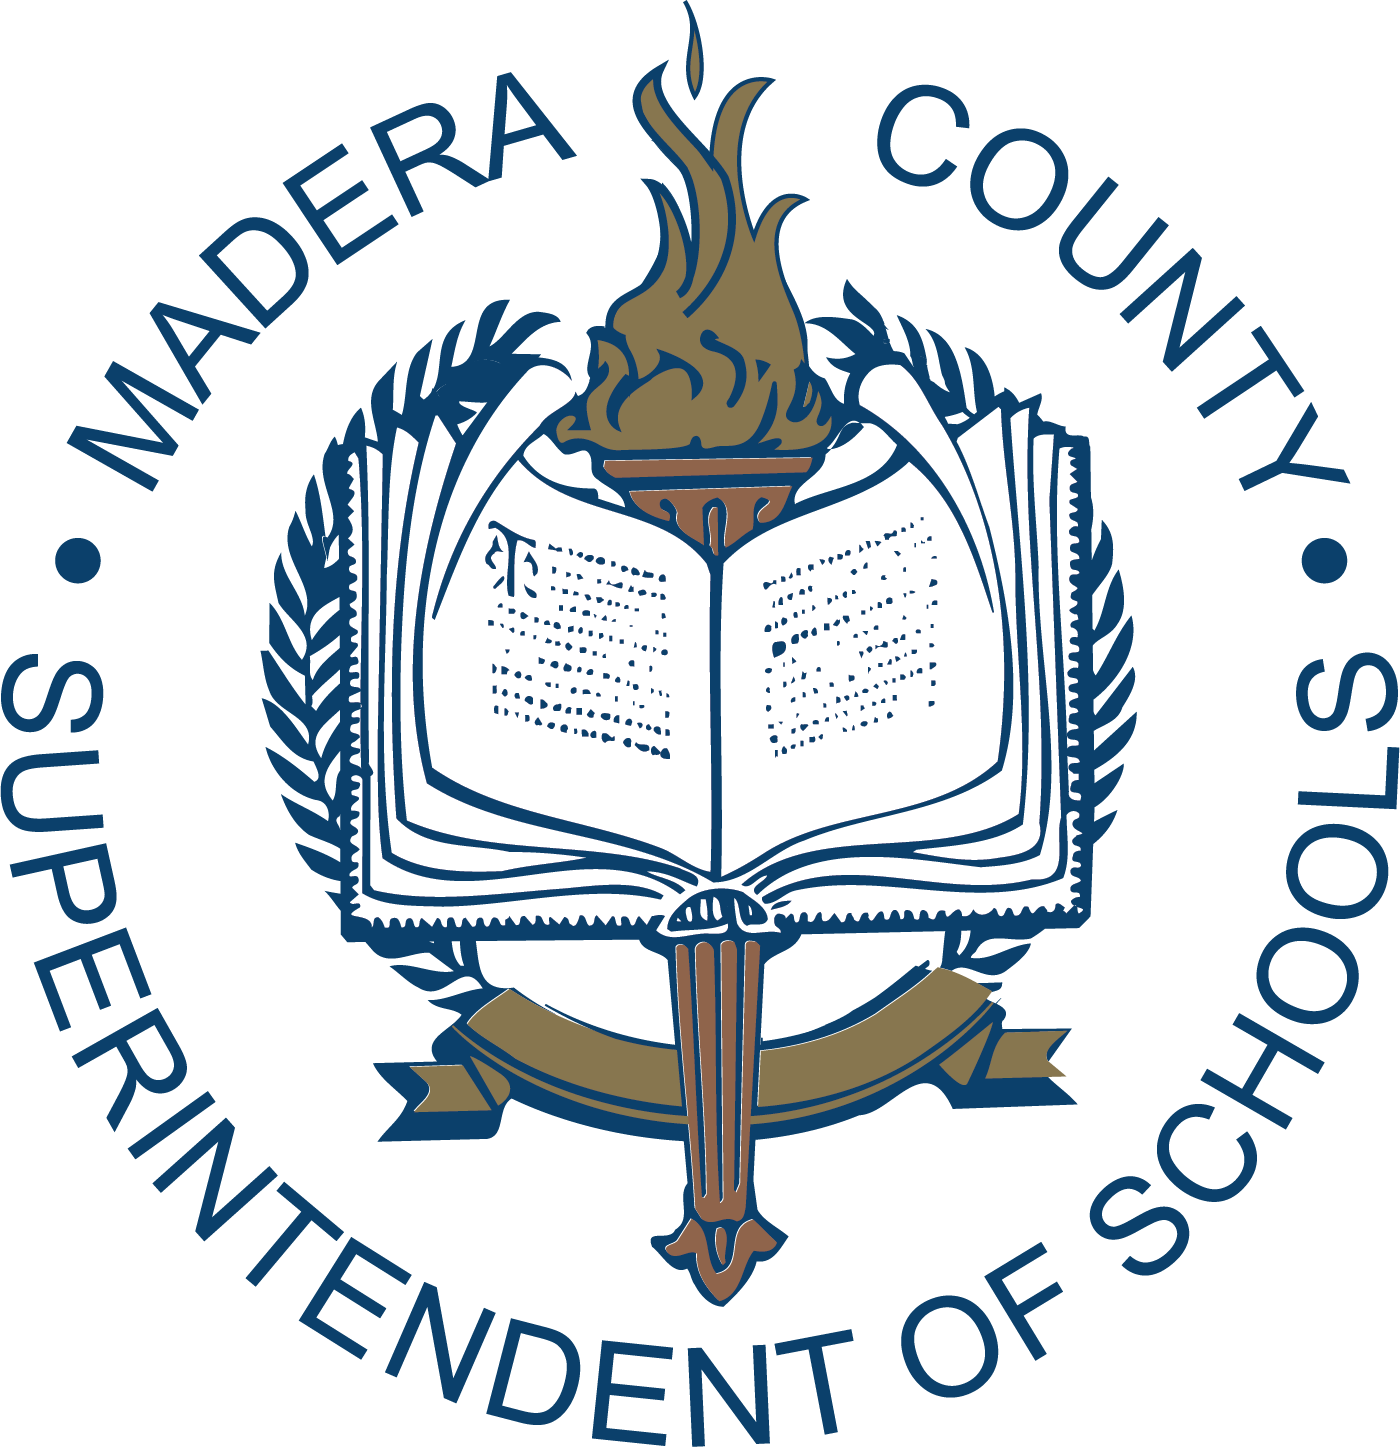 Madera County Superintendent of Schools / Homepage